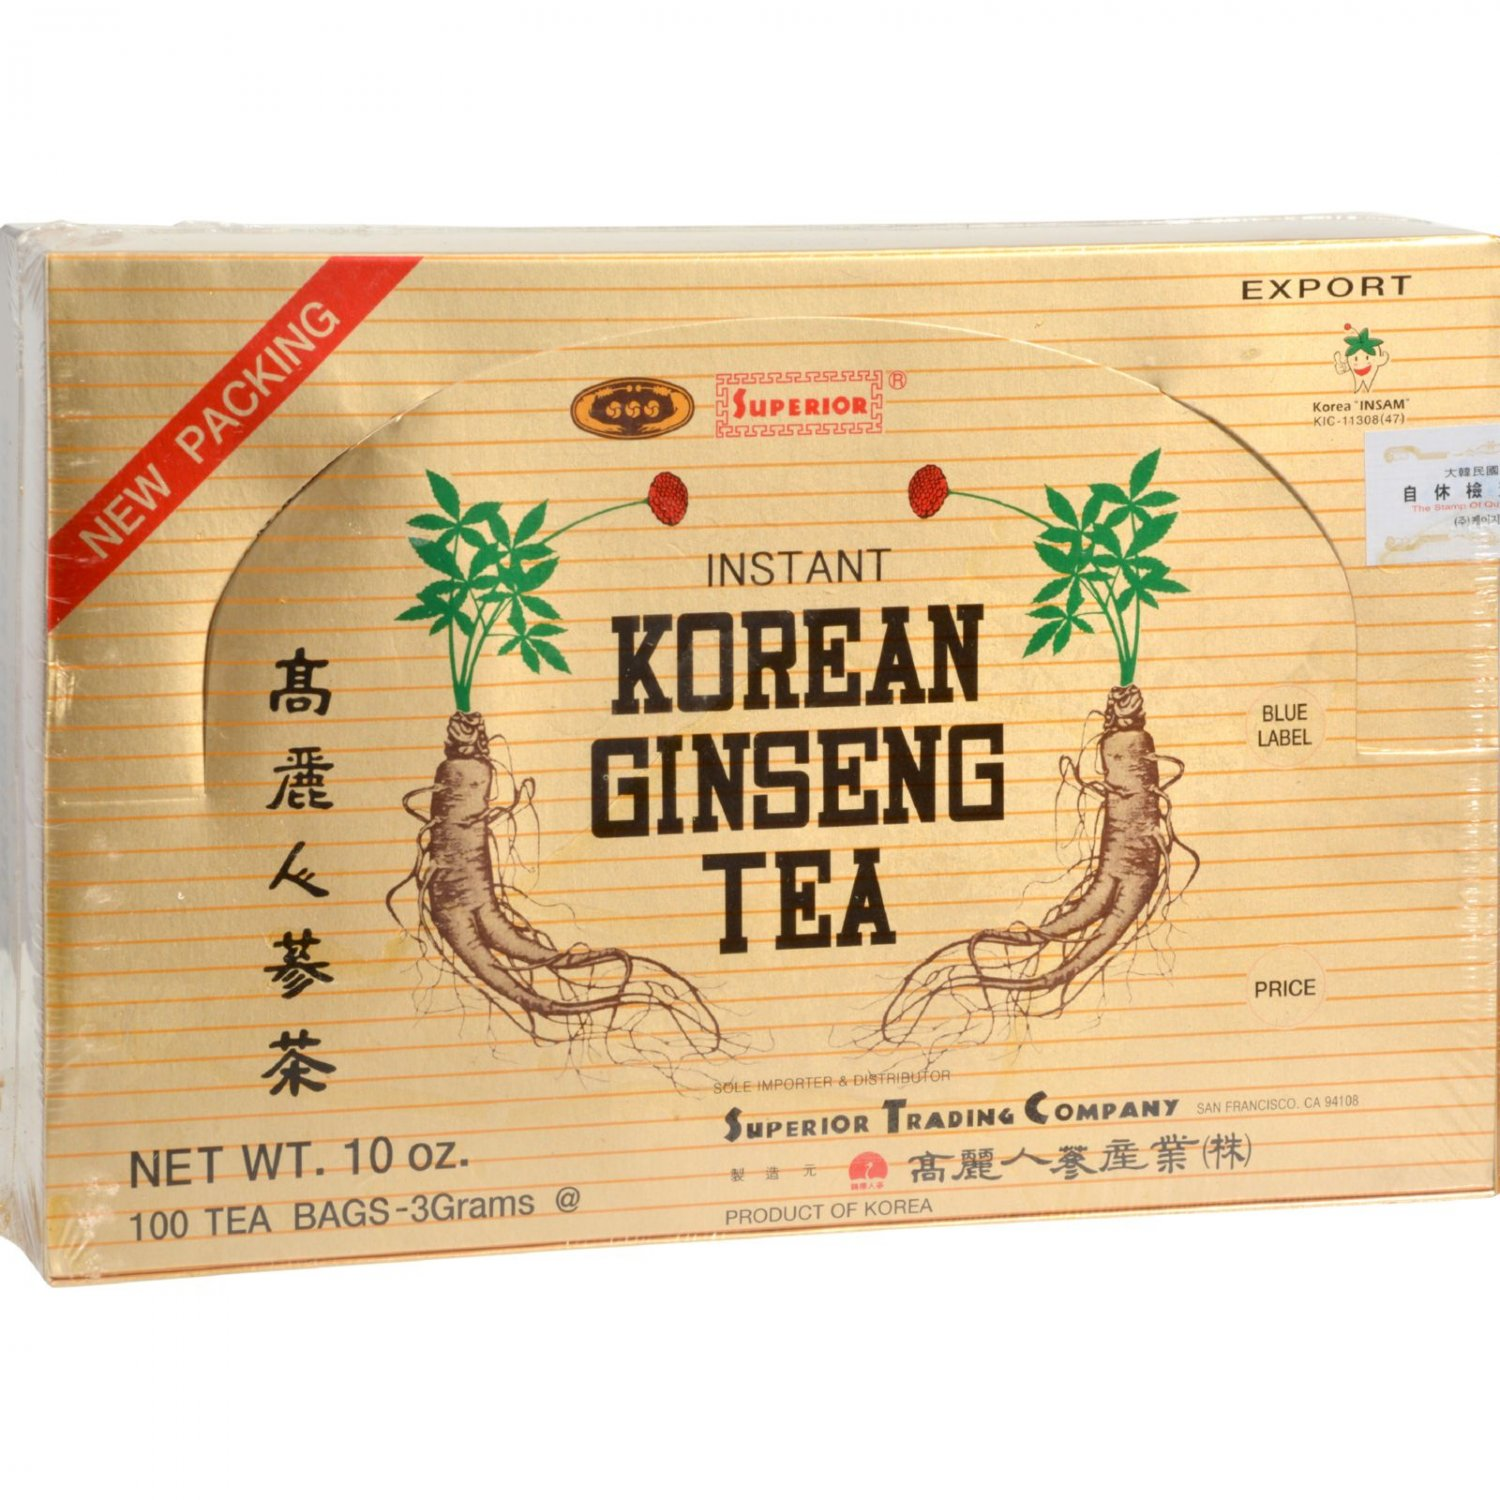 Superior Instant Korean Ginseng Tea - 100 Tea Bags